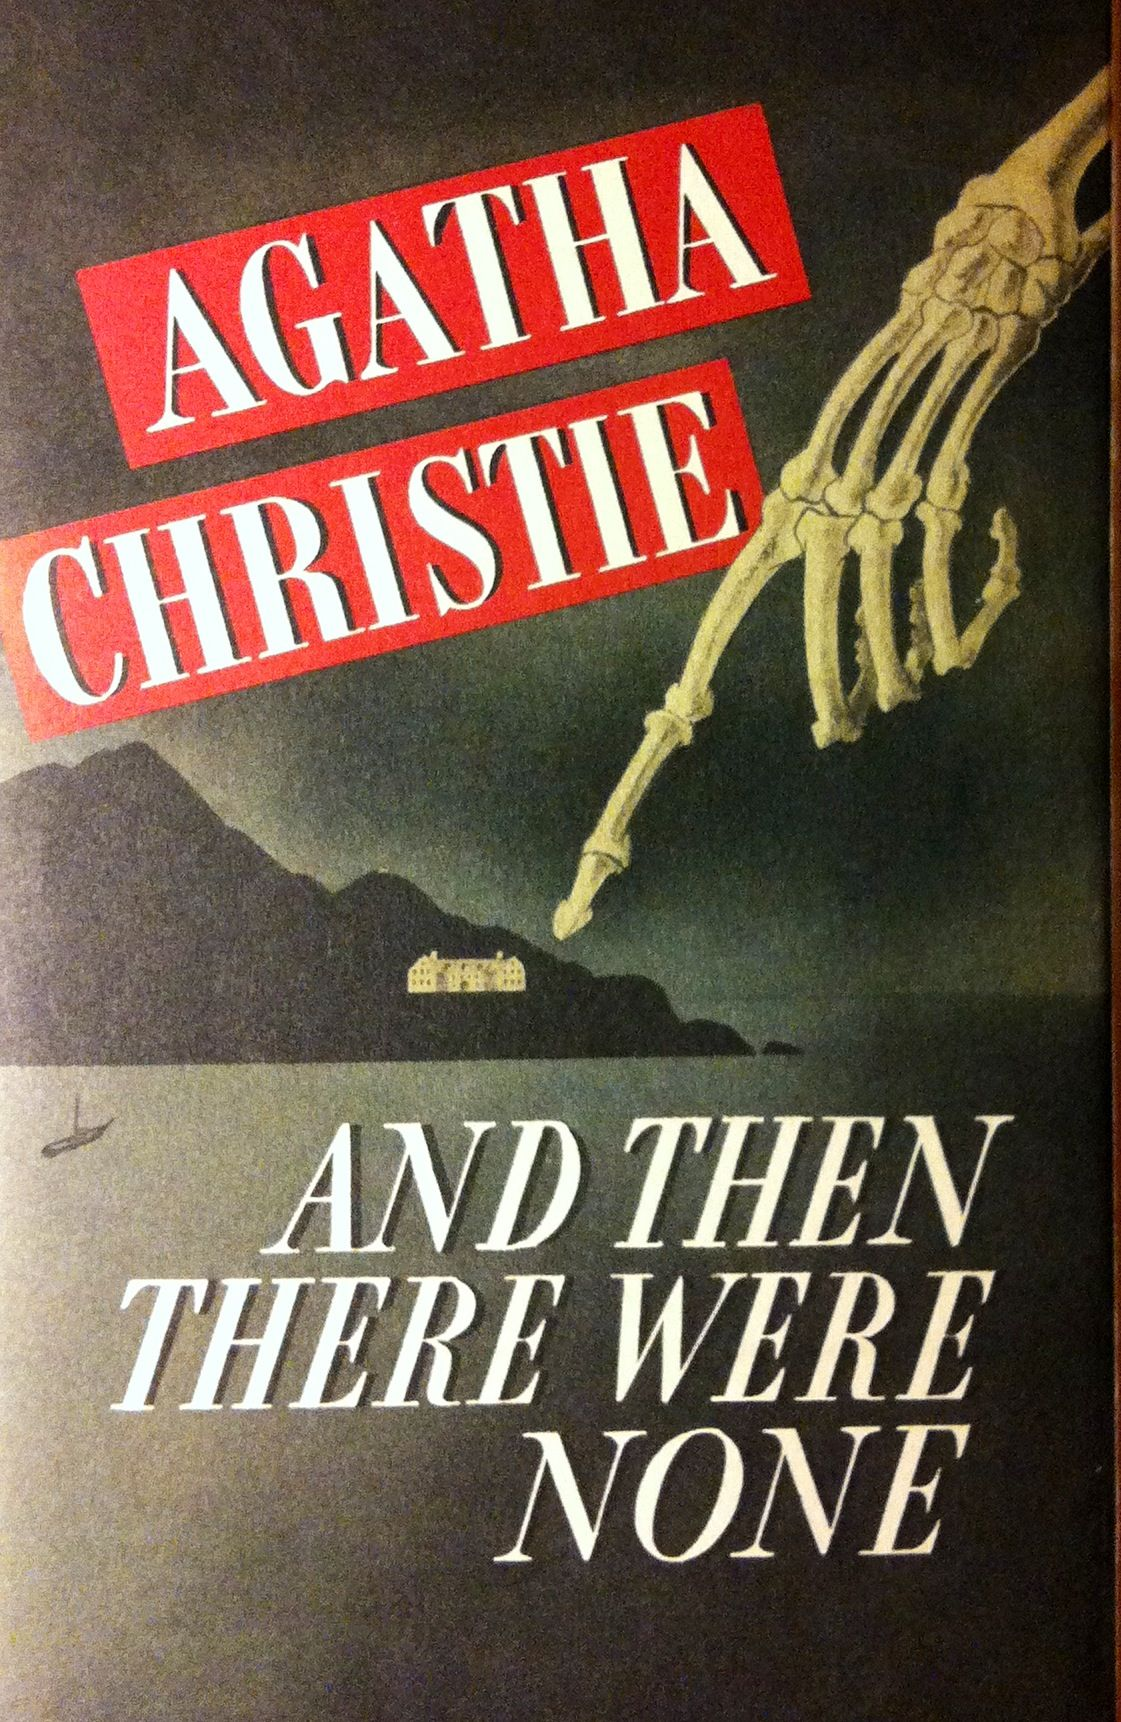 Agatha Christie And Then There Were None Ebook